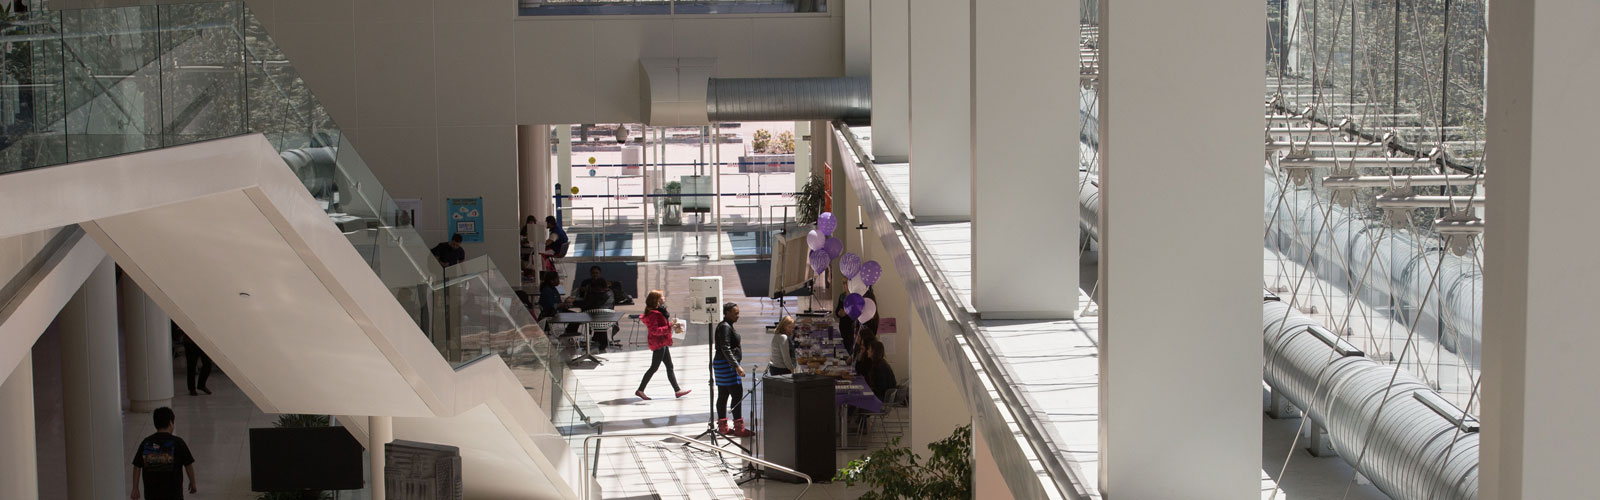 A view of the atrium at the Stamford campus